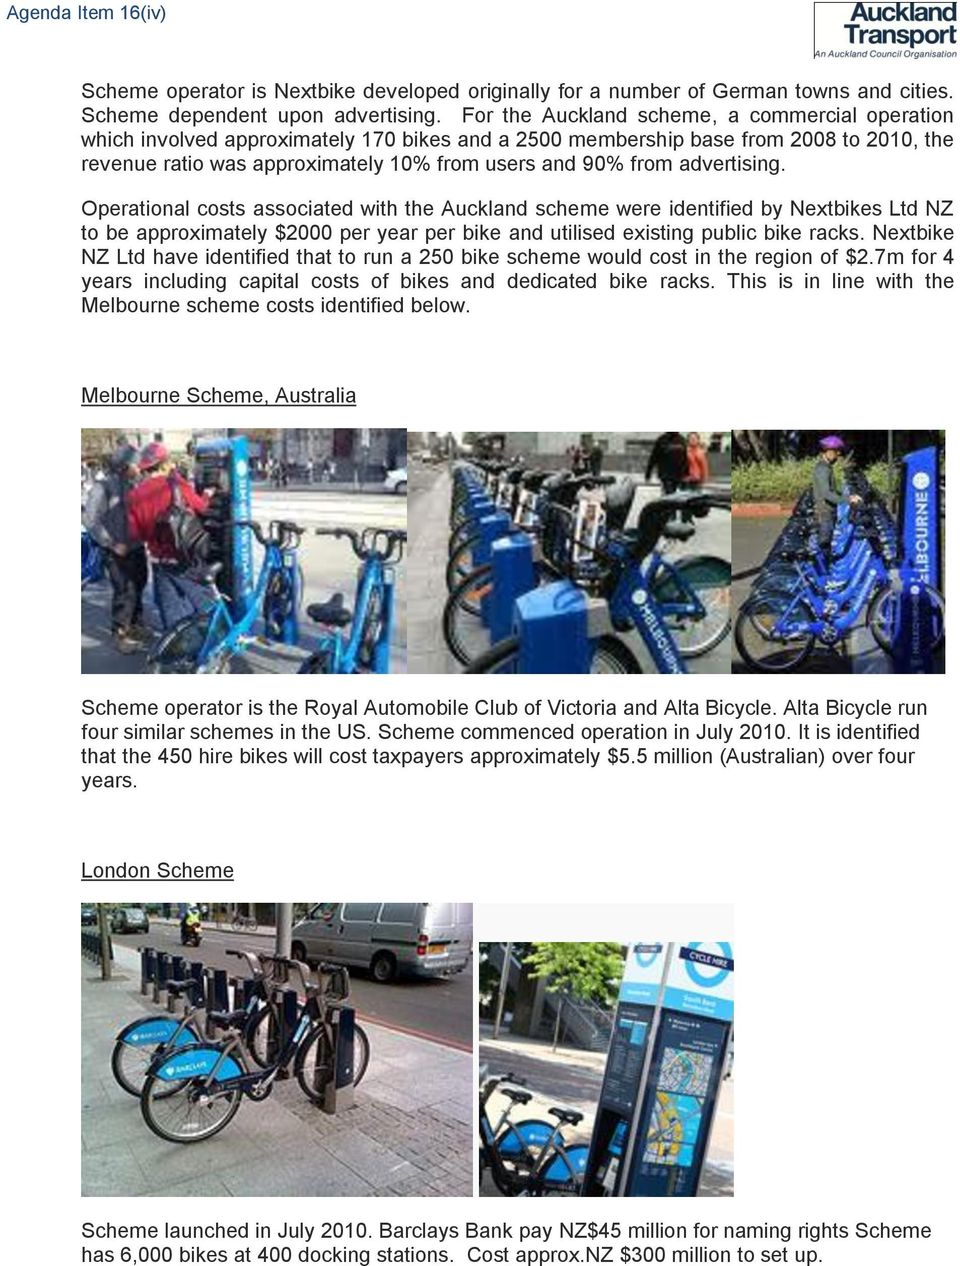 advertising. Operational costs associated with the Auckland scheme were identified by Nextbikes Ltd NZ to be approximately $2000 per year per bike and utilised existing public bike racks.